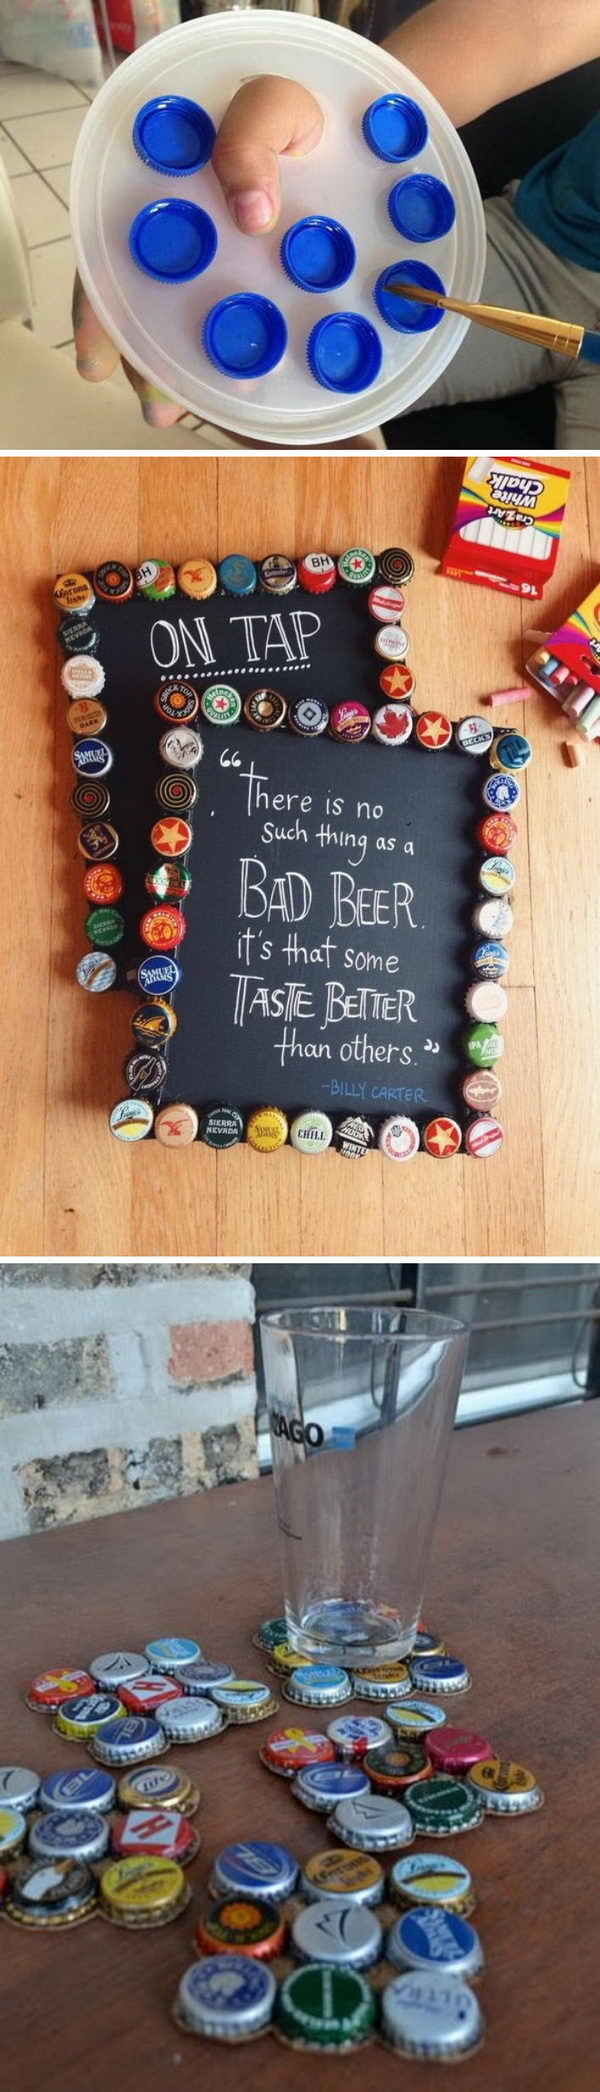 25 Awesome Ideas Tutorials To Craft With Bottle Caps 2019